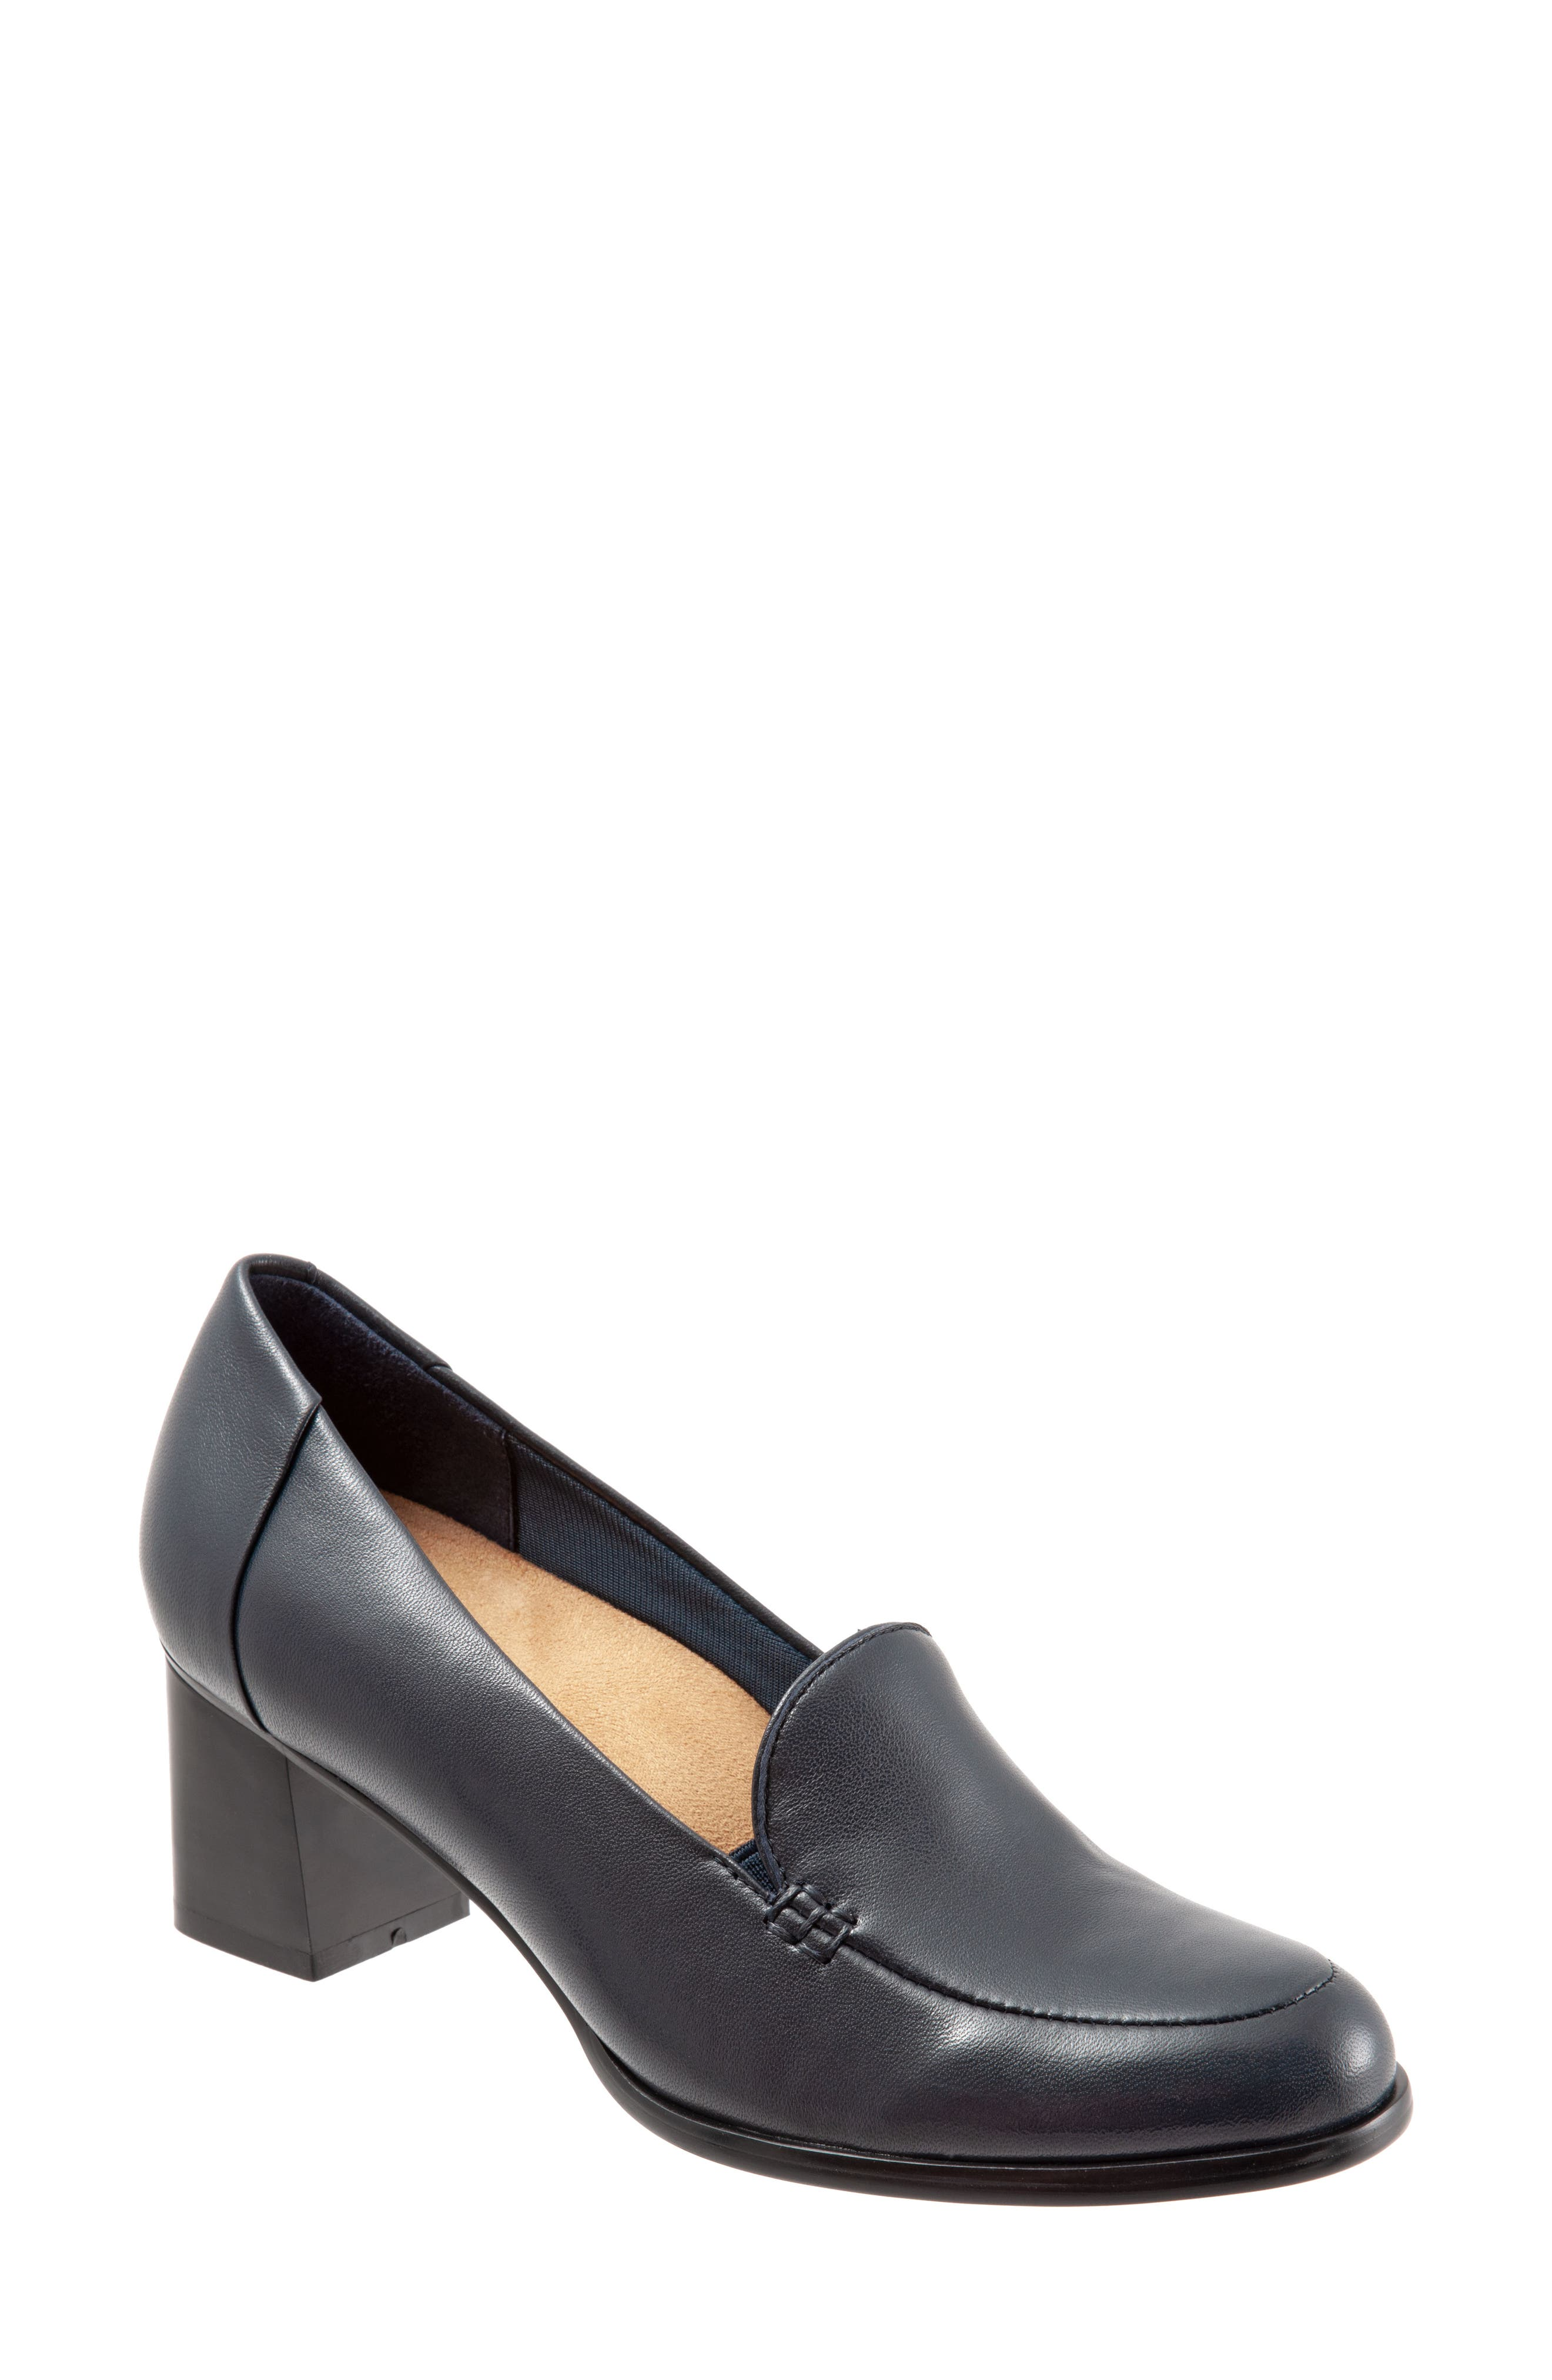 TROTTERS,                             Quincy Loafer Pump,                             Main thumbnail 1, color,                             NAVY LEATHER